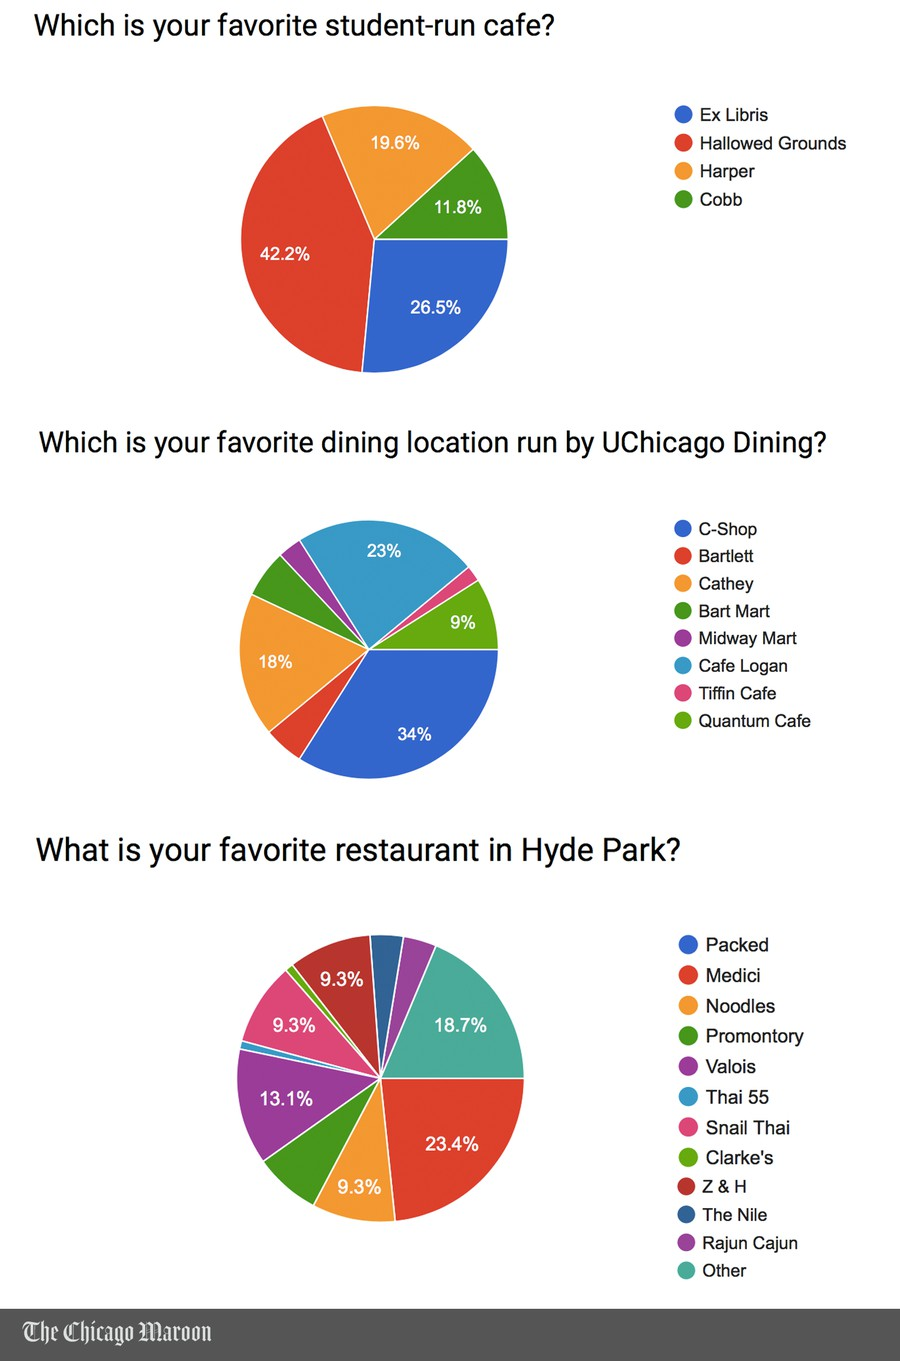 Data collected through a survey on chicagomaroon.com.